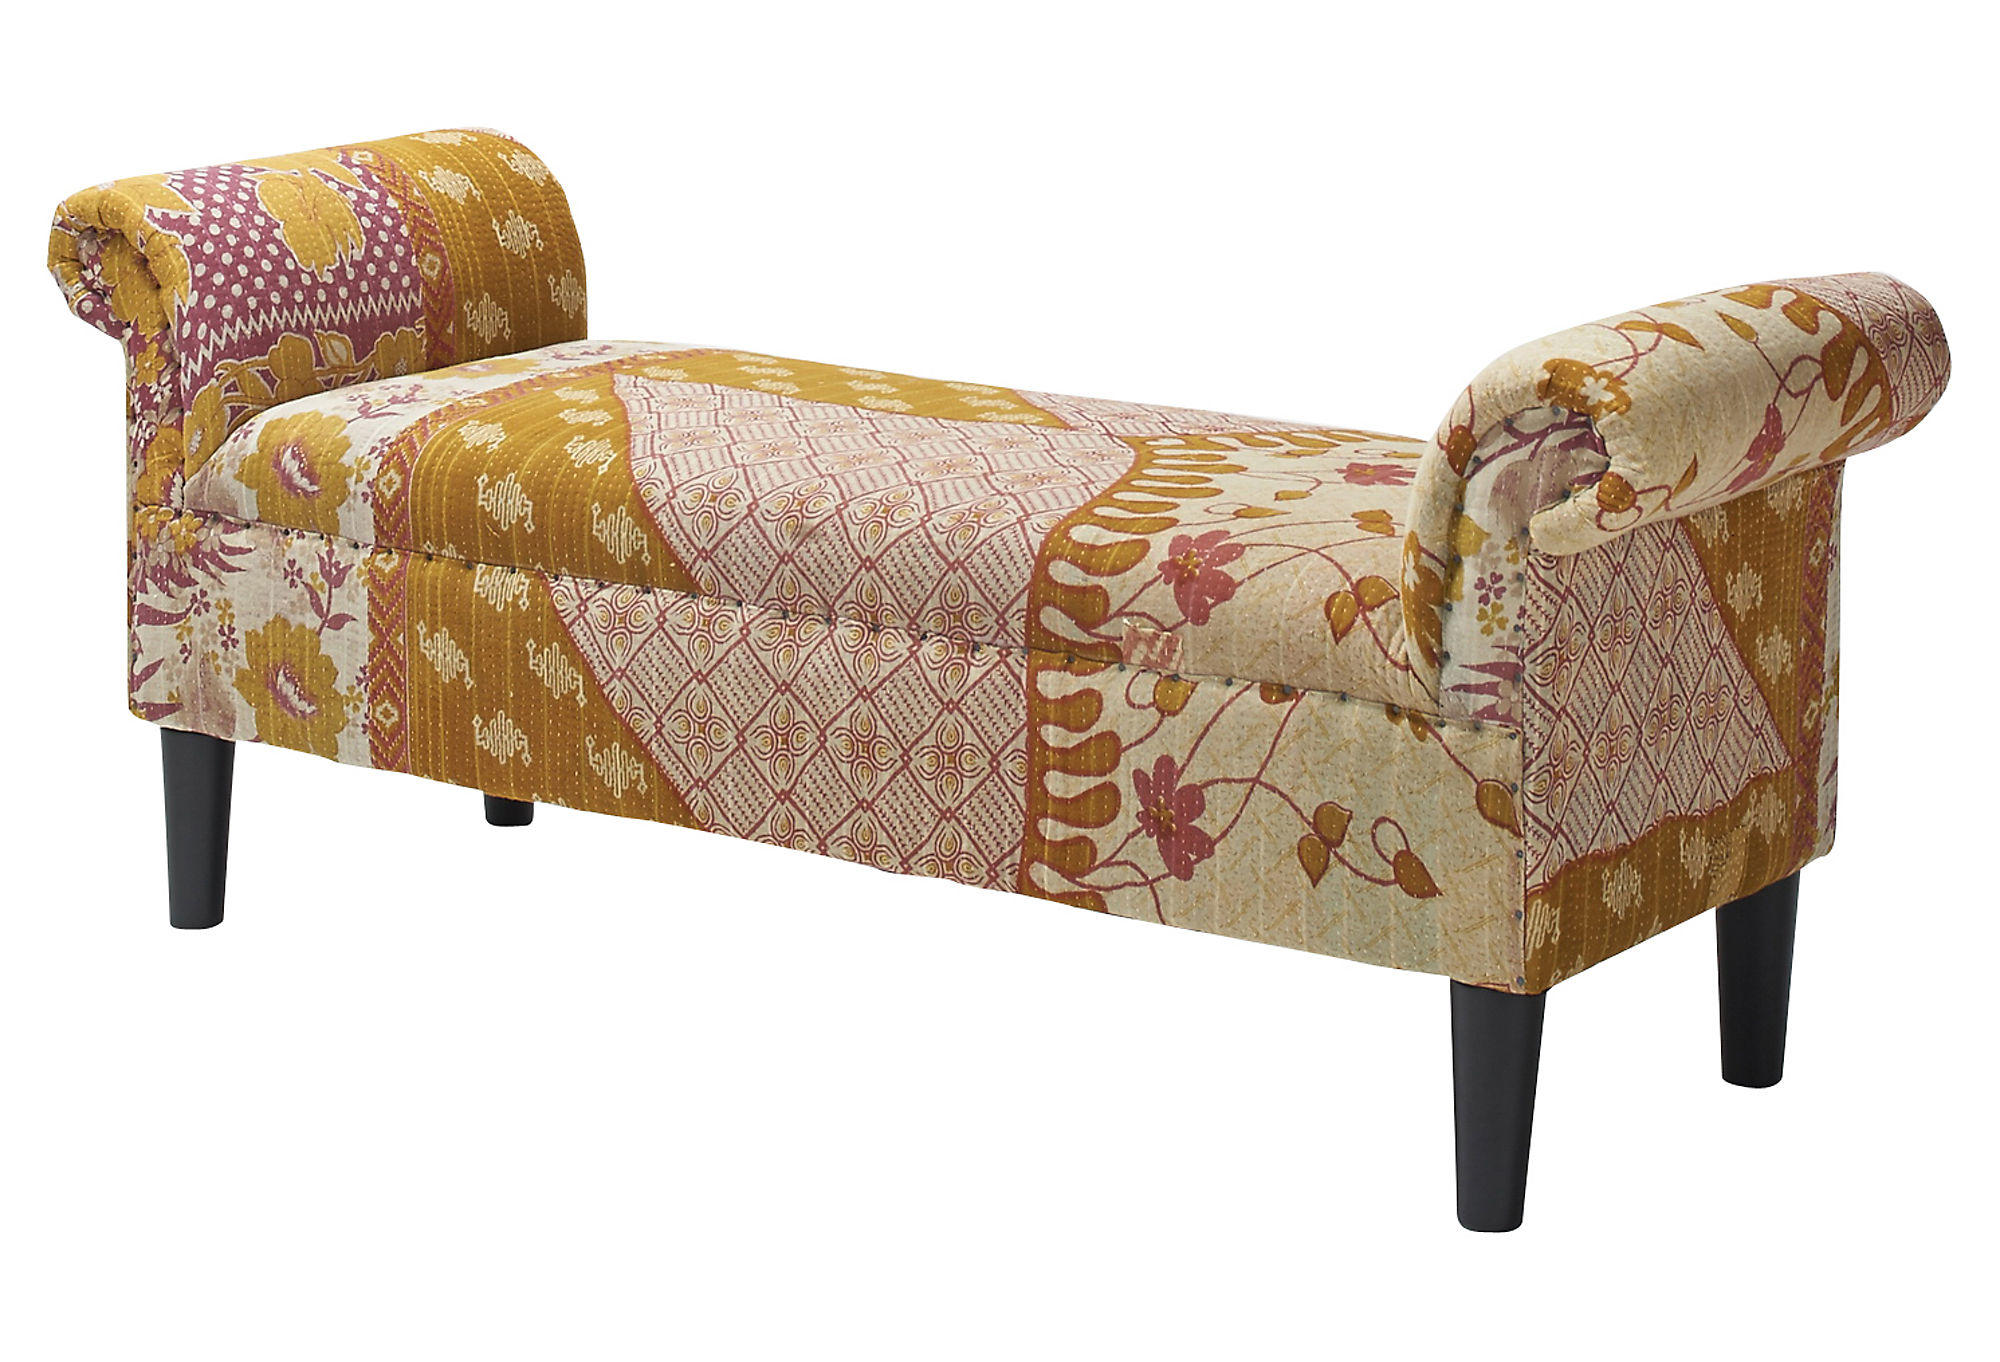 Kantha Roll Arm Bench Cream Gold From One Kings Lane Things I